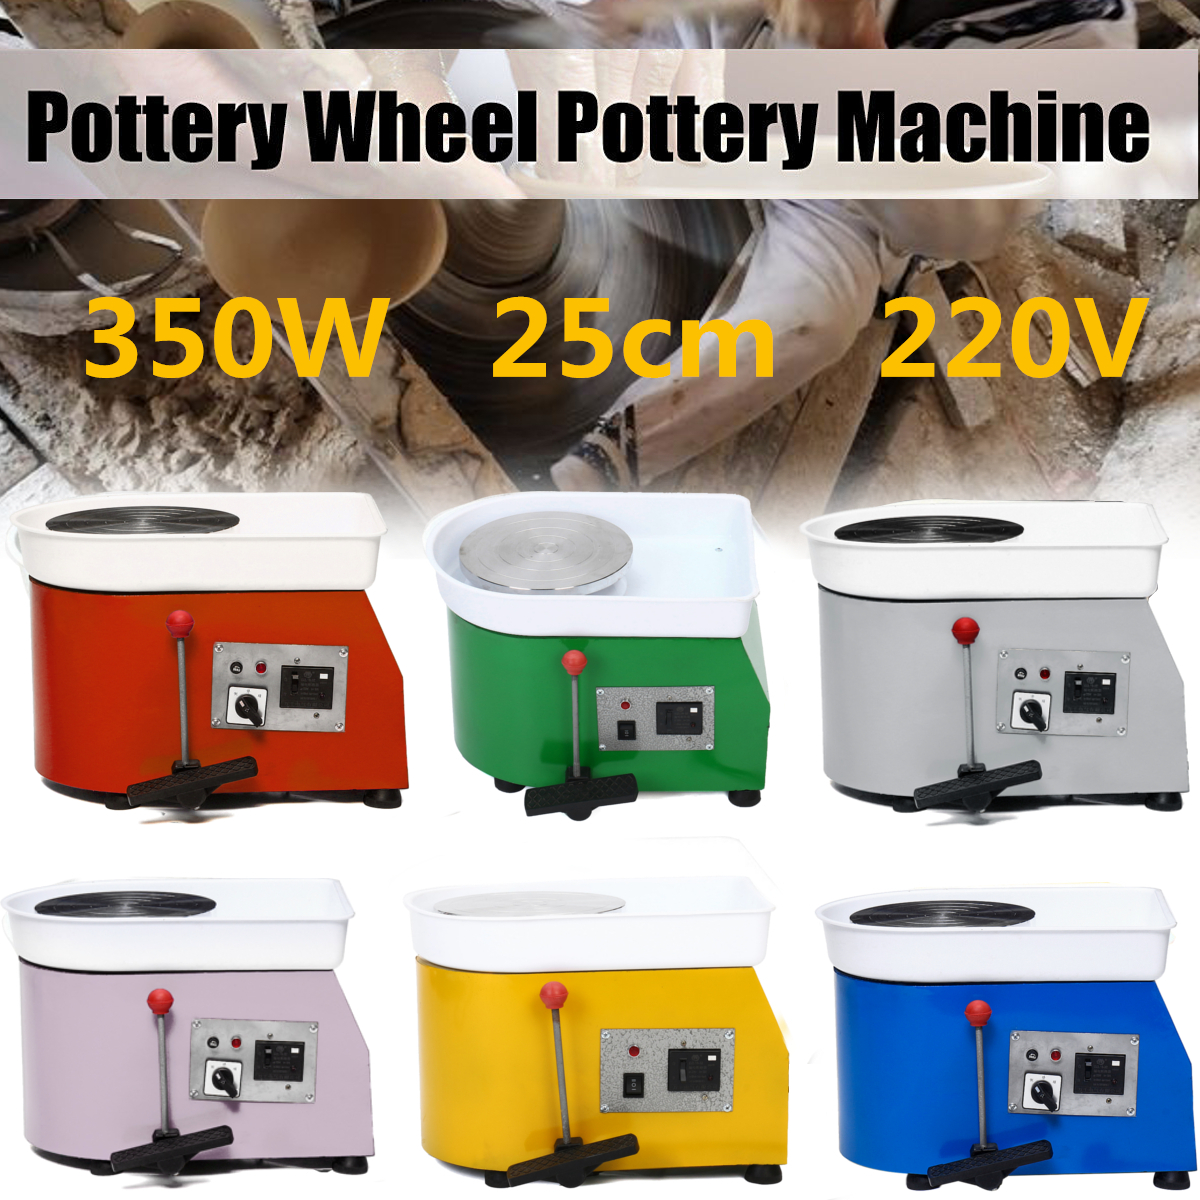 25cm 350W 220V Pottery Wheel Pottery DIY Clay Machine For Ceramic Work Ceramics Clay Children Learning Toy polish pottery spoon rest blue bells